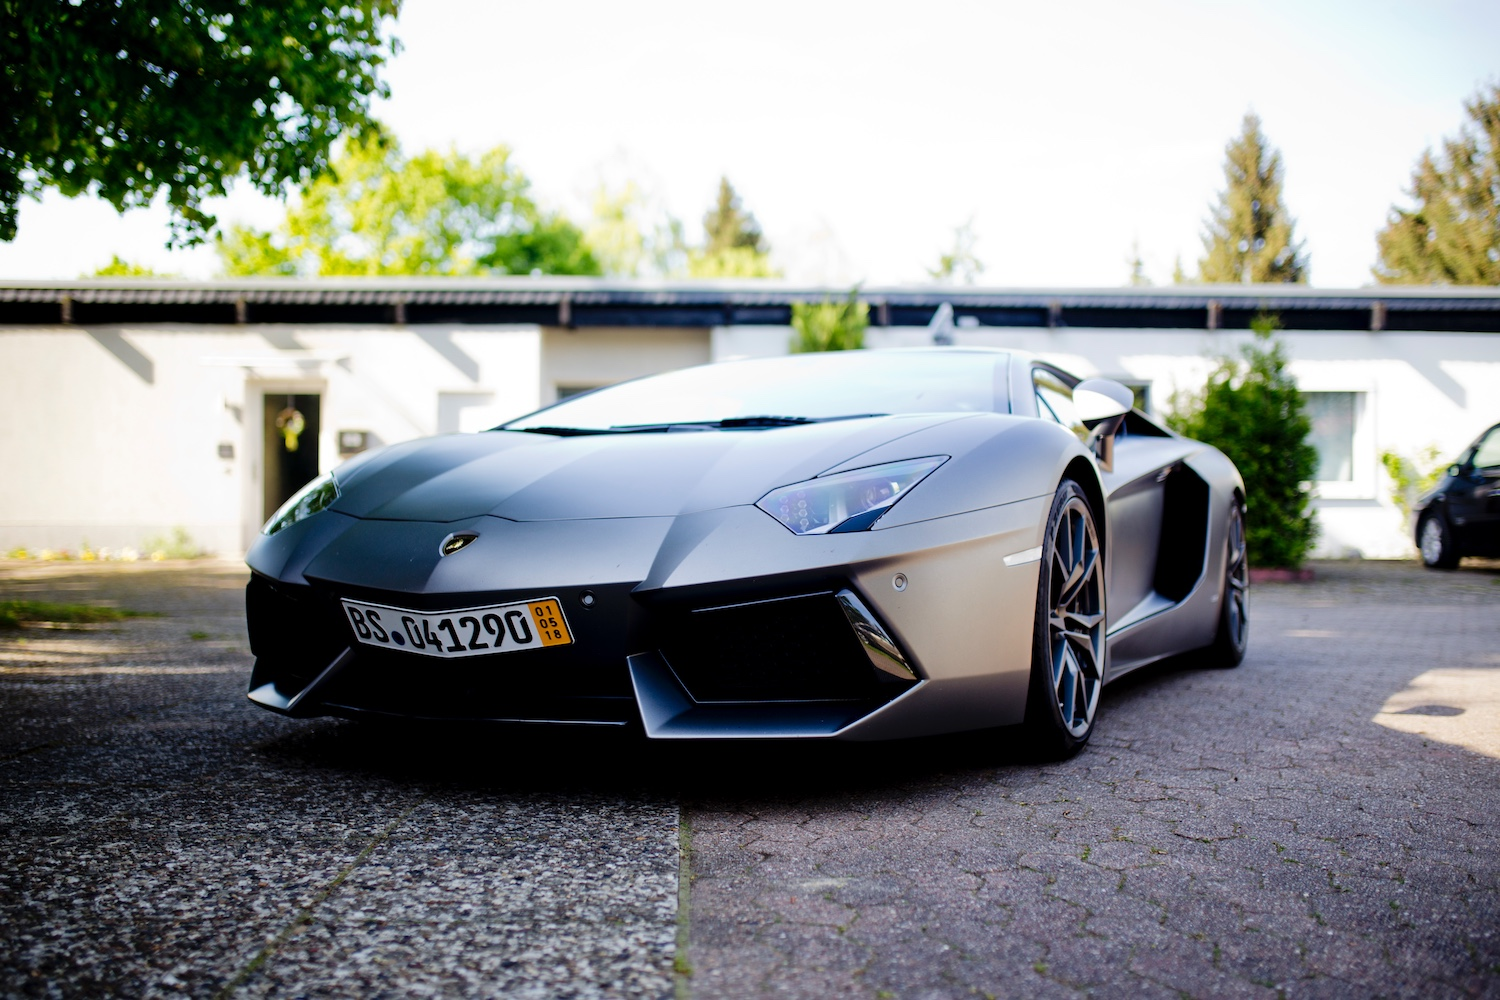 First time driving a Lamborghini Aventador LP 700-4 NAVI 20 LM PDC